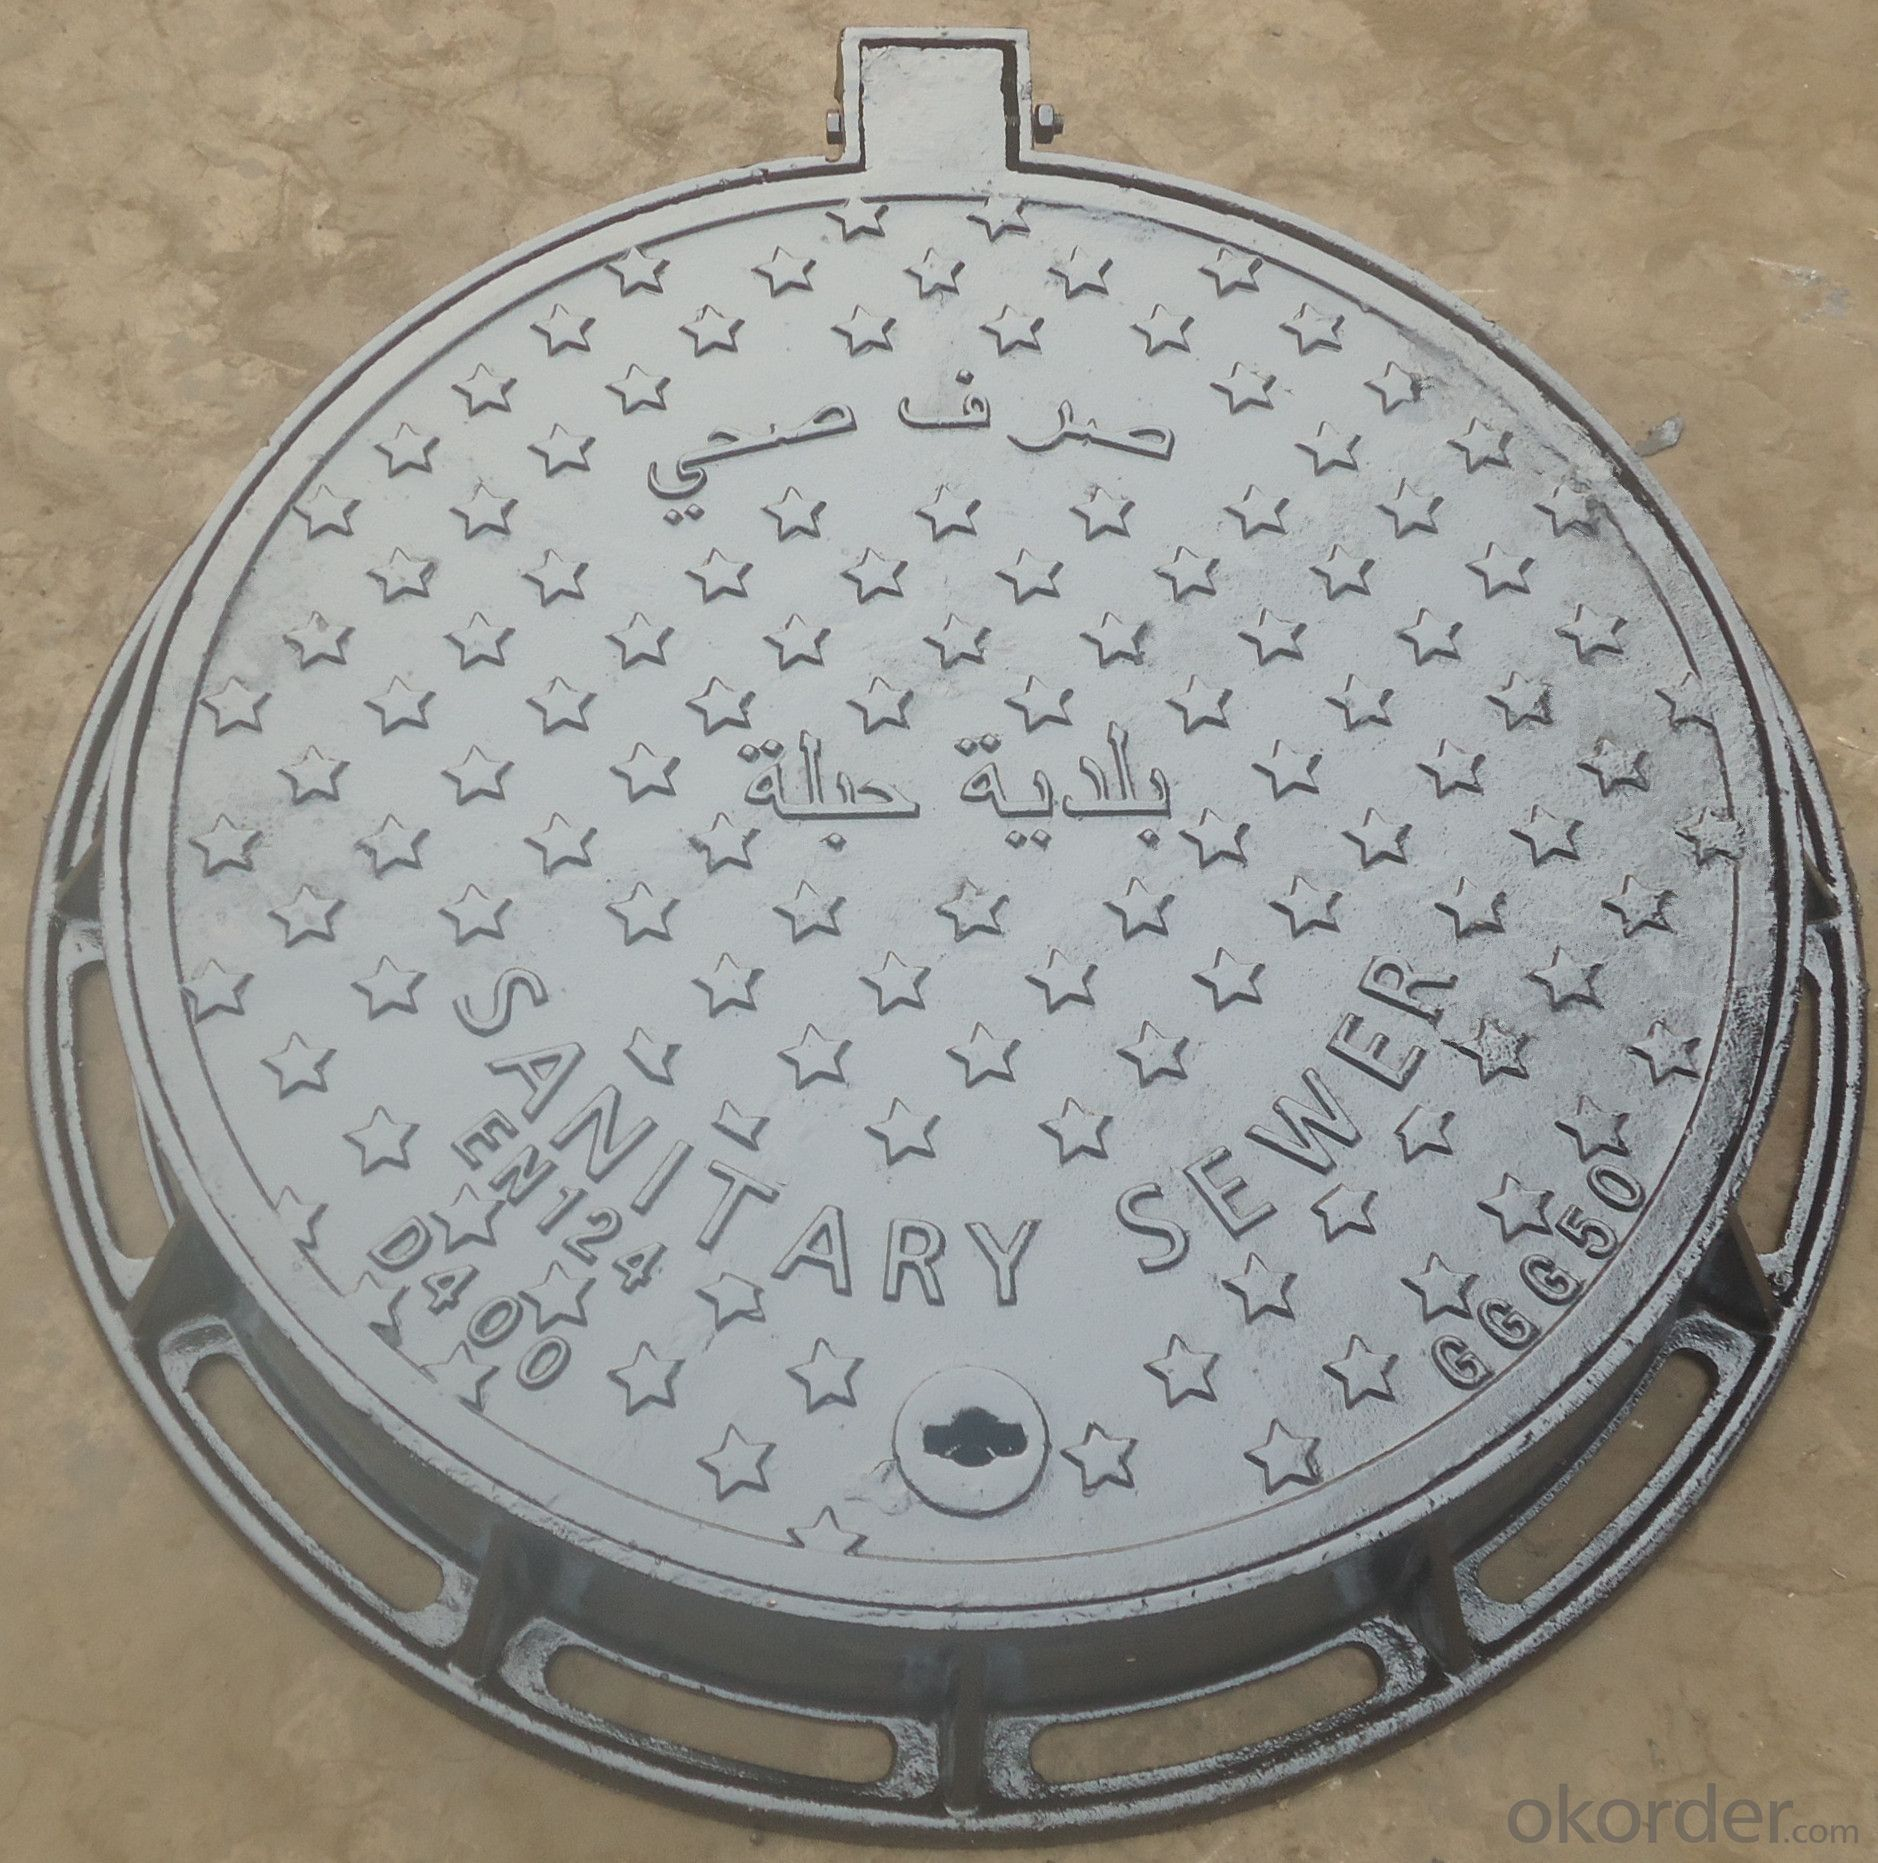 Circular 600 cast iron manhole covers